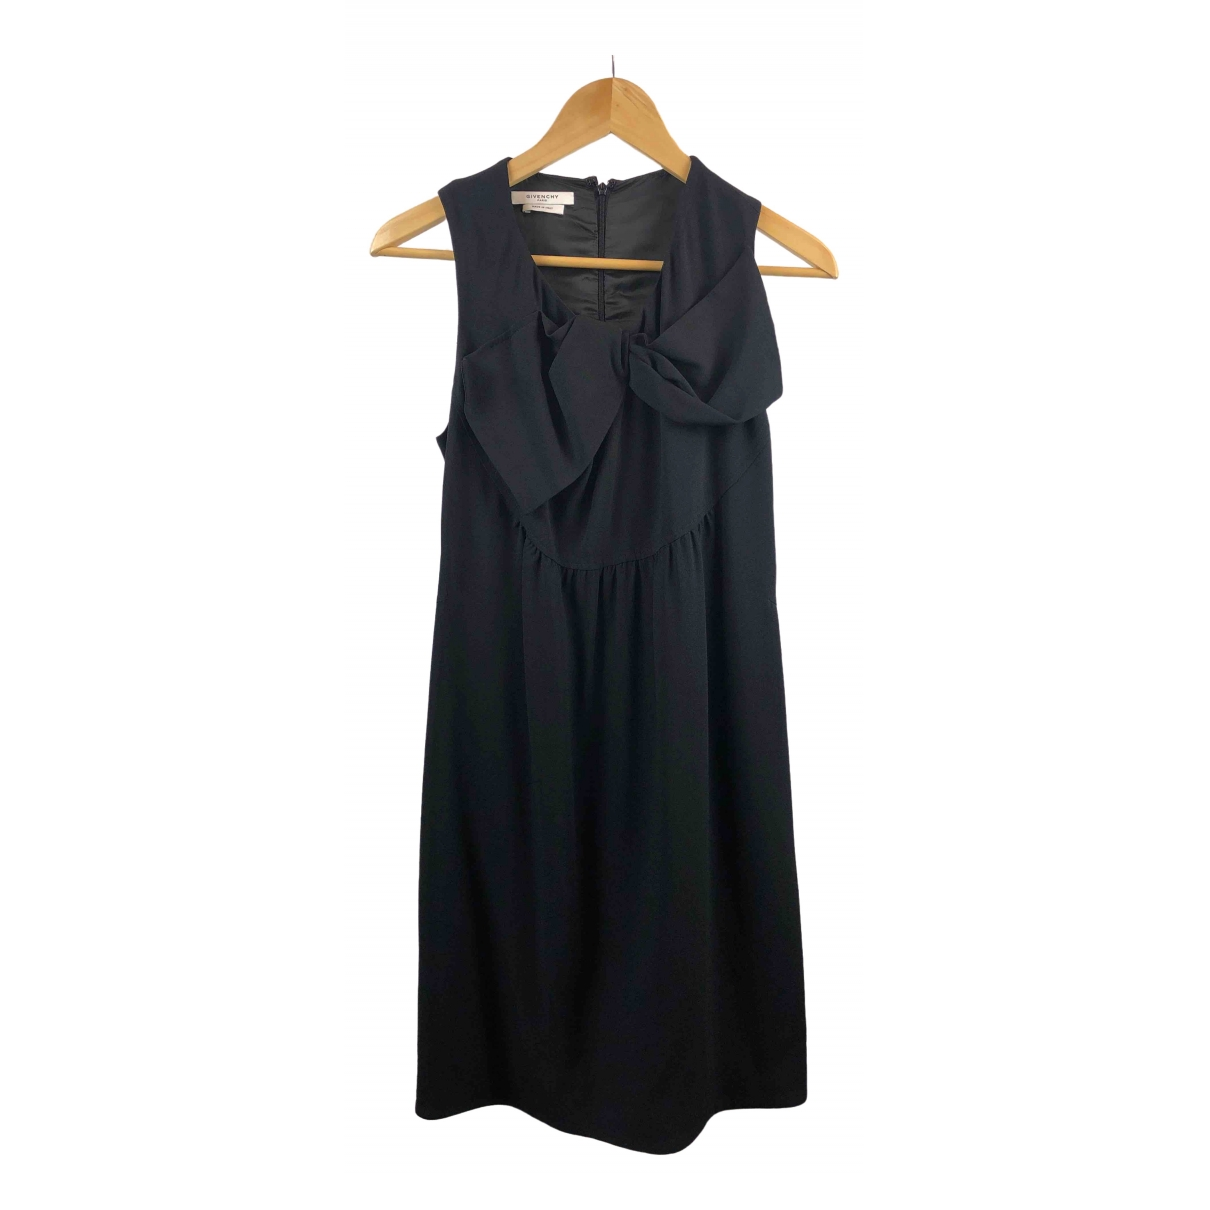 Givenchy \N Black dress for Women 40 IT